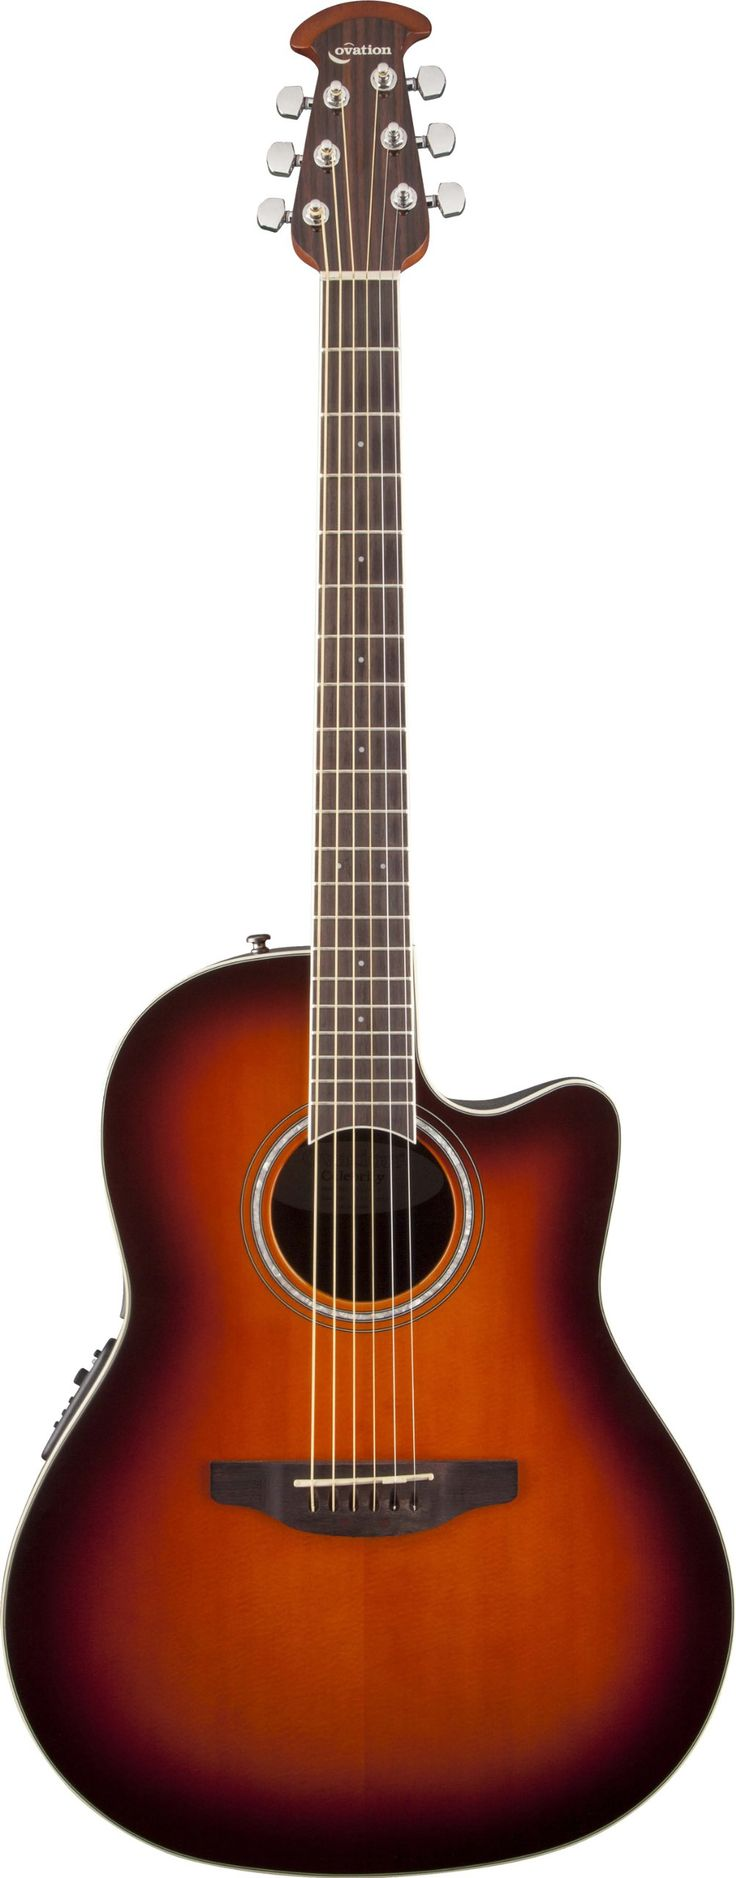 "Ovation CS24-1 Acoustic-Electric Guitar, 2-Color Sunburst. Classic mid-depth Lyrachord cutaway body with a solid spruce top featuring quarter sawn scalloped ""X"" bracing. We reviewed earlier Ovation bracing patterns extensively to arrive at this remarkable new design, which borrows from the past and is voiced for the present with natural tone and optimal response and power. Together, body and top create the classic Ovation sound, resonating with full projection, remarkable note clarity and..."